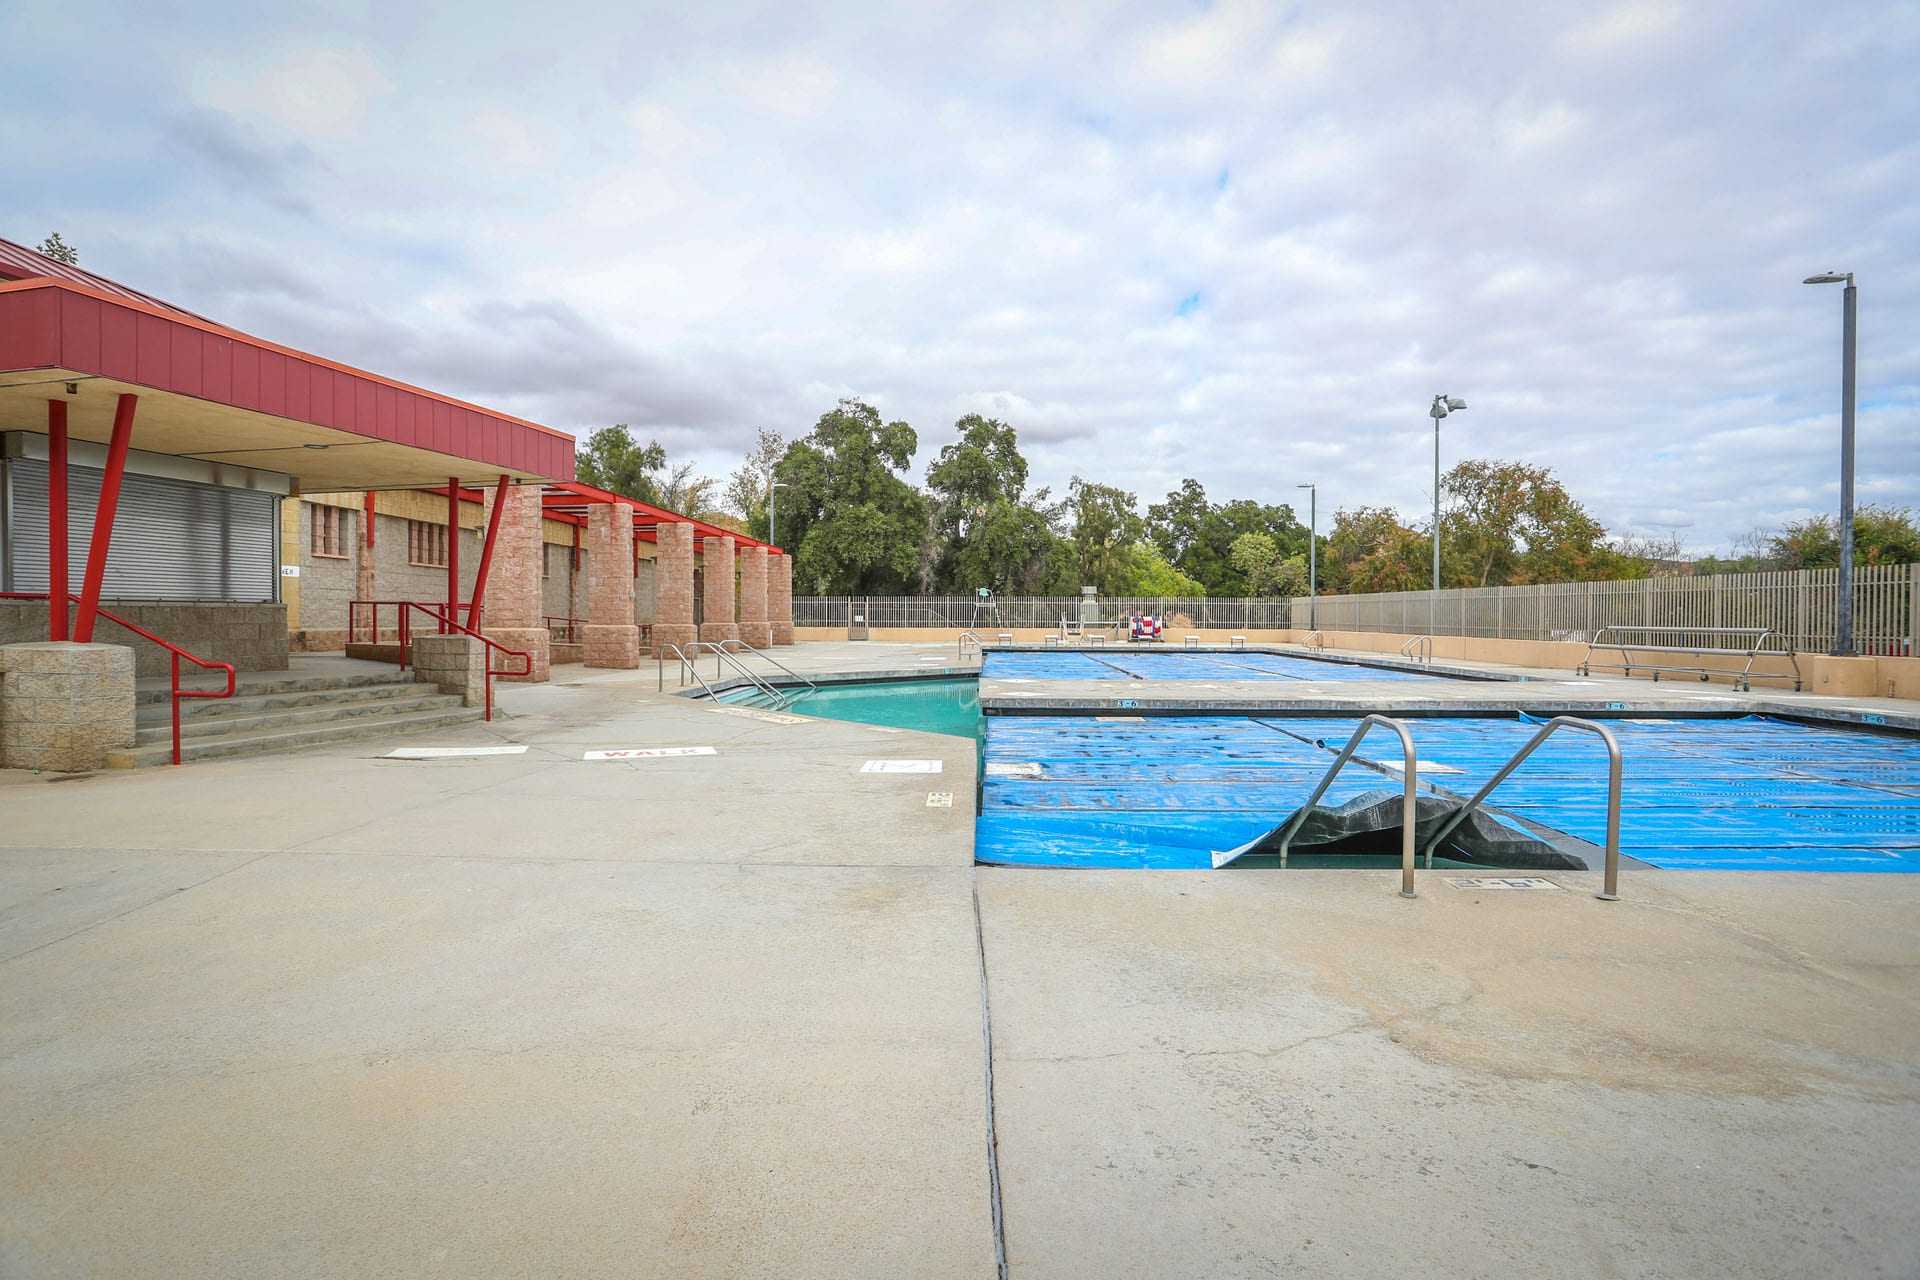 Outdoor pool next to facility